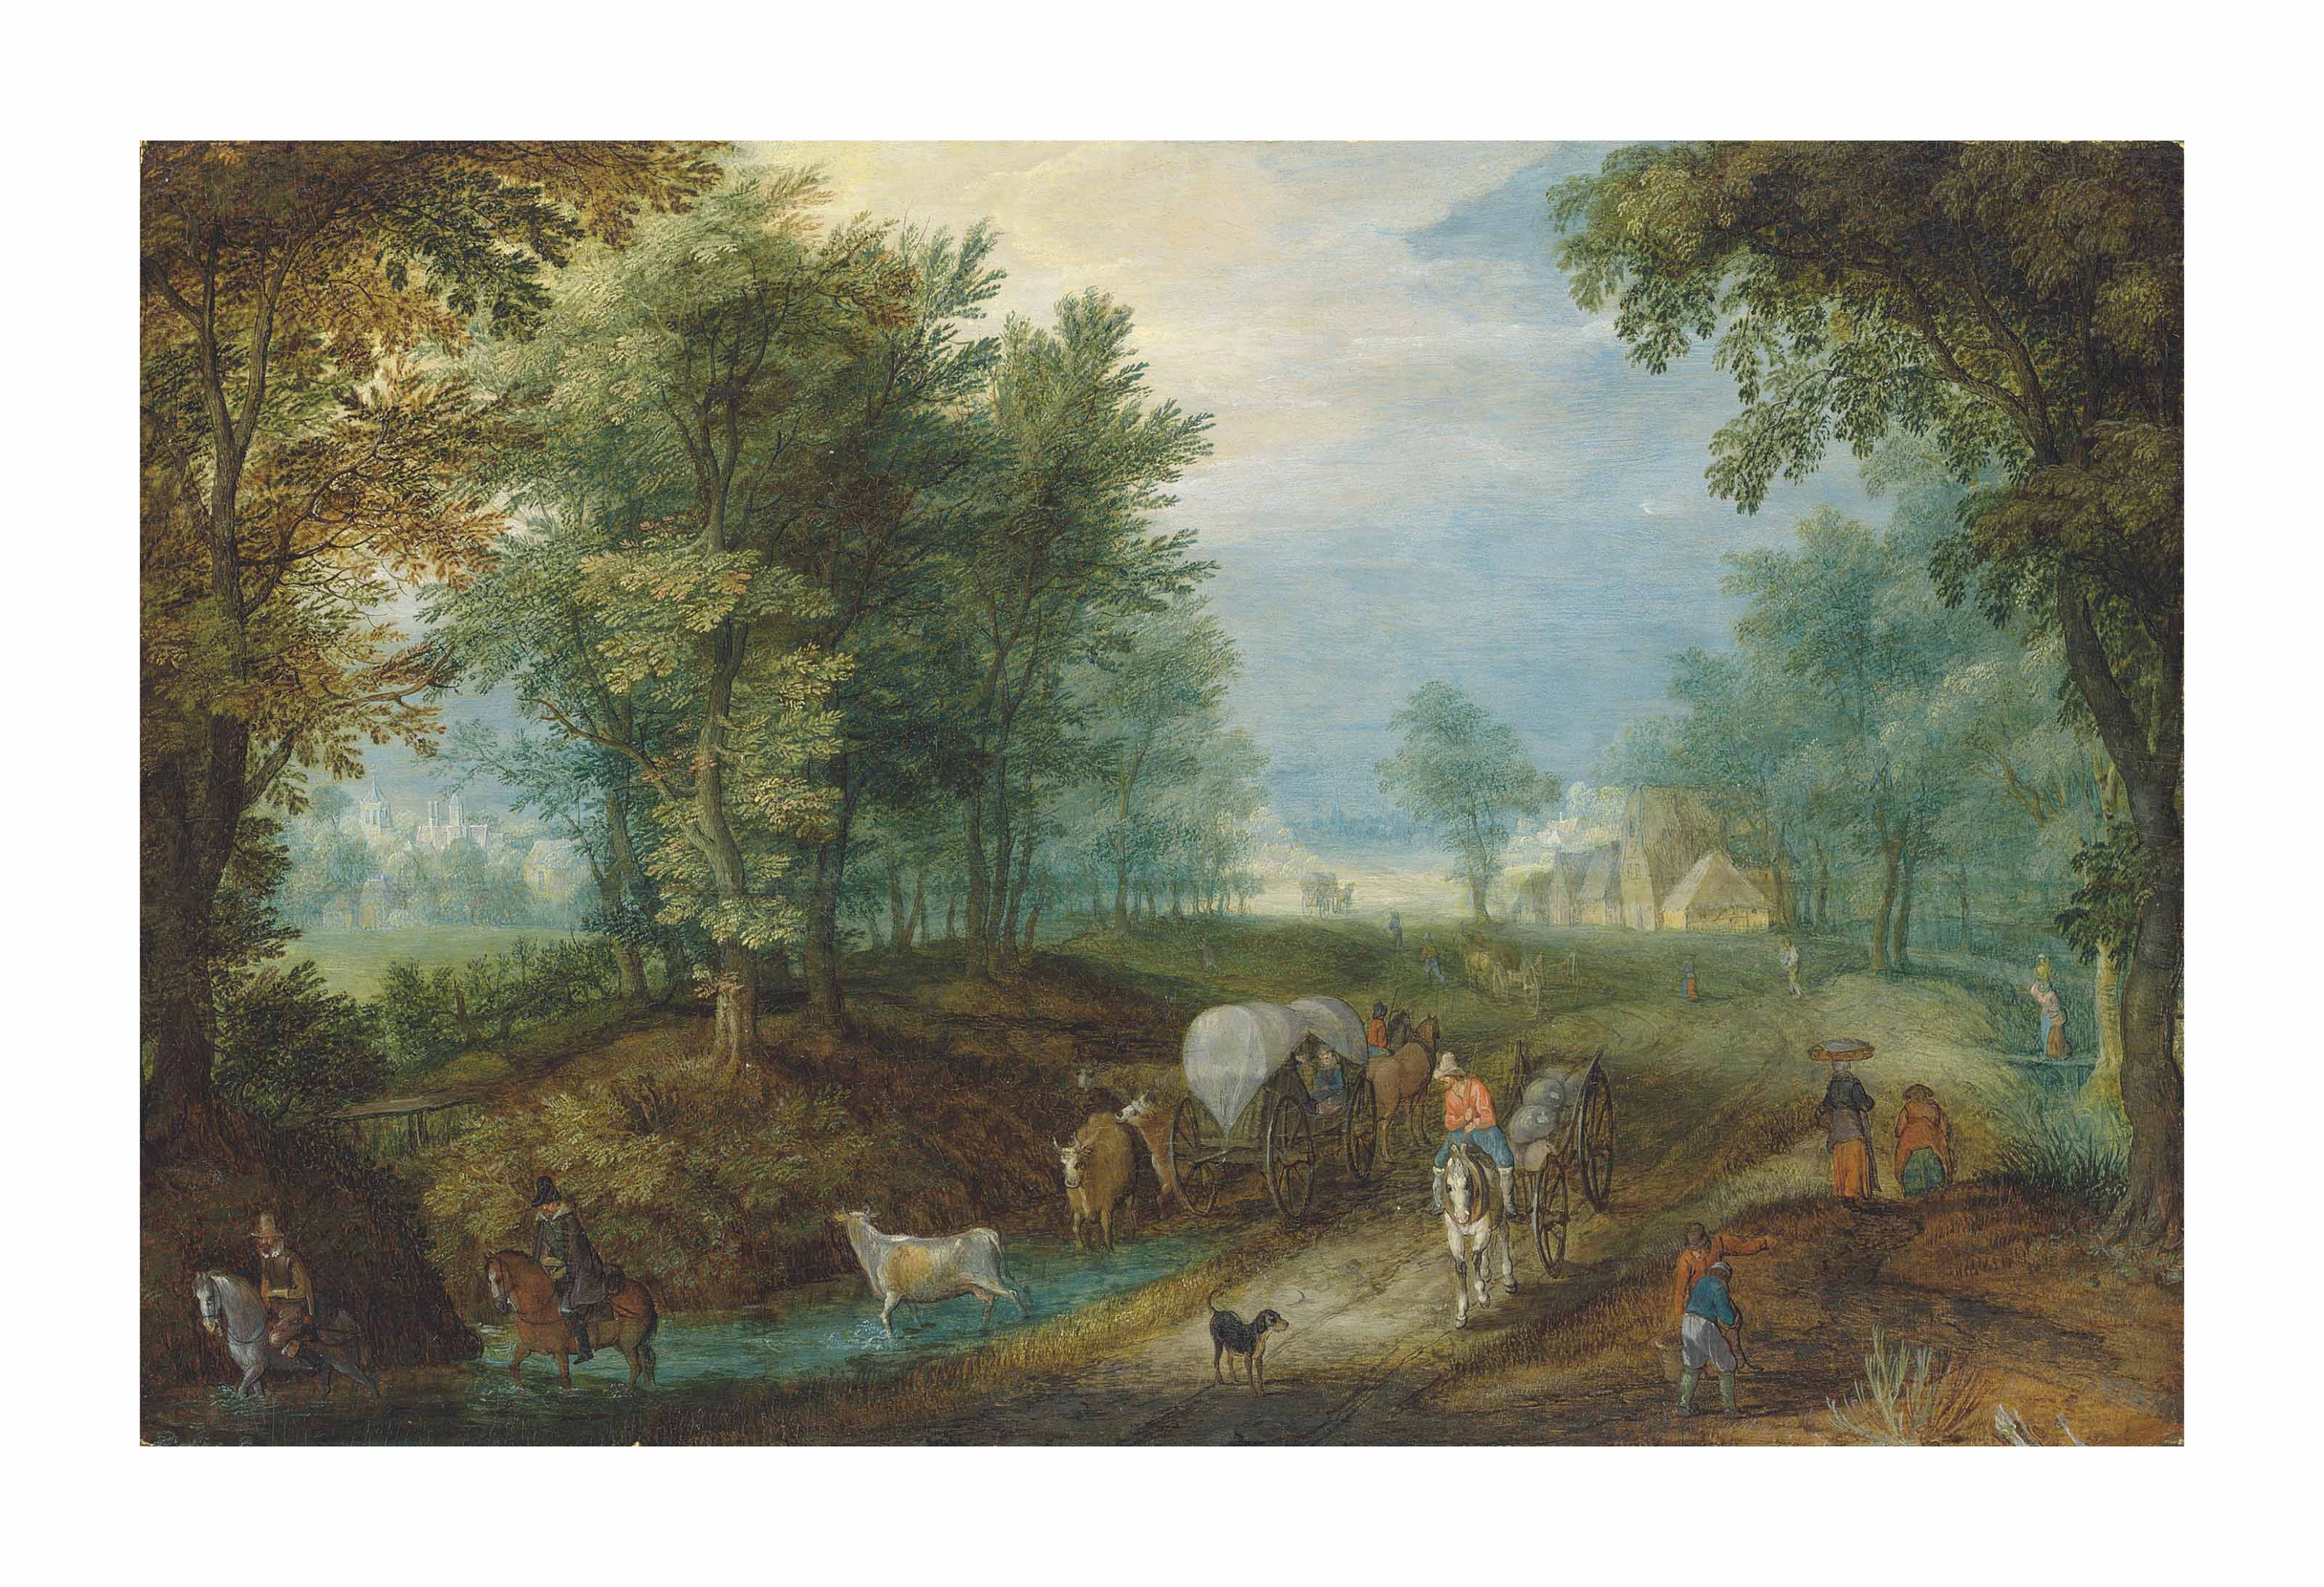 Travellers and carts on a road in a wooded landscape